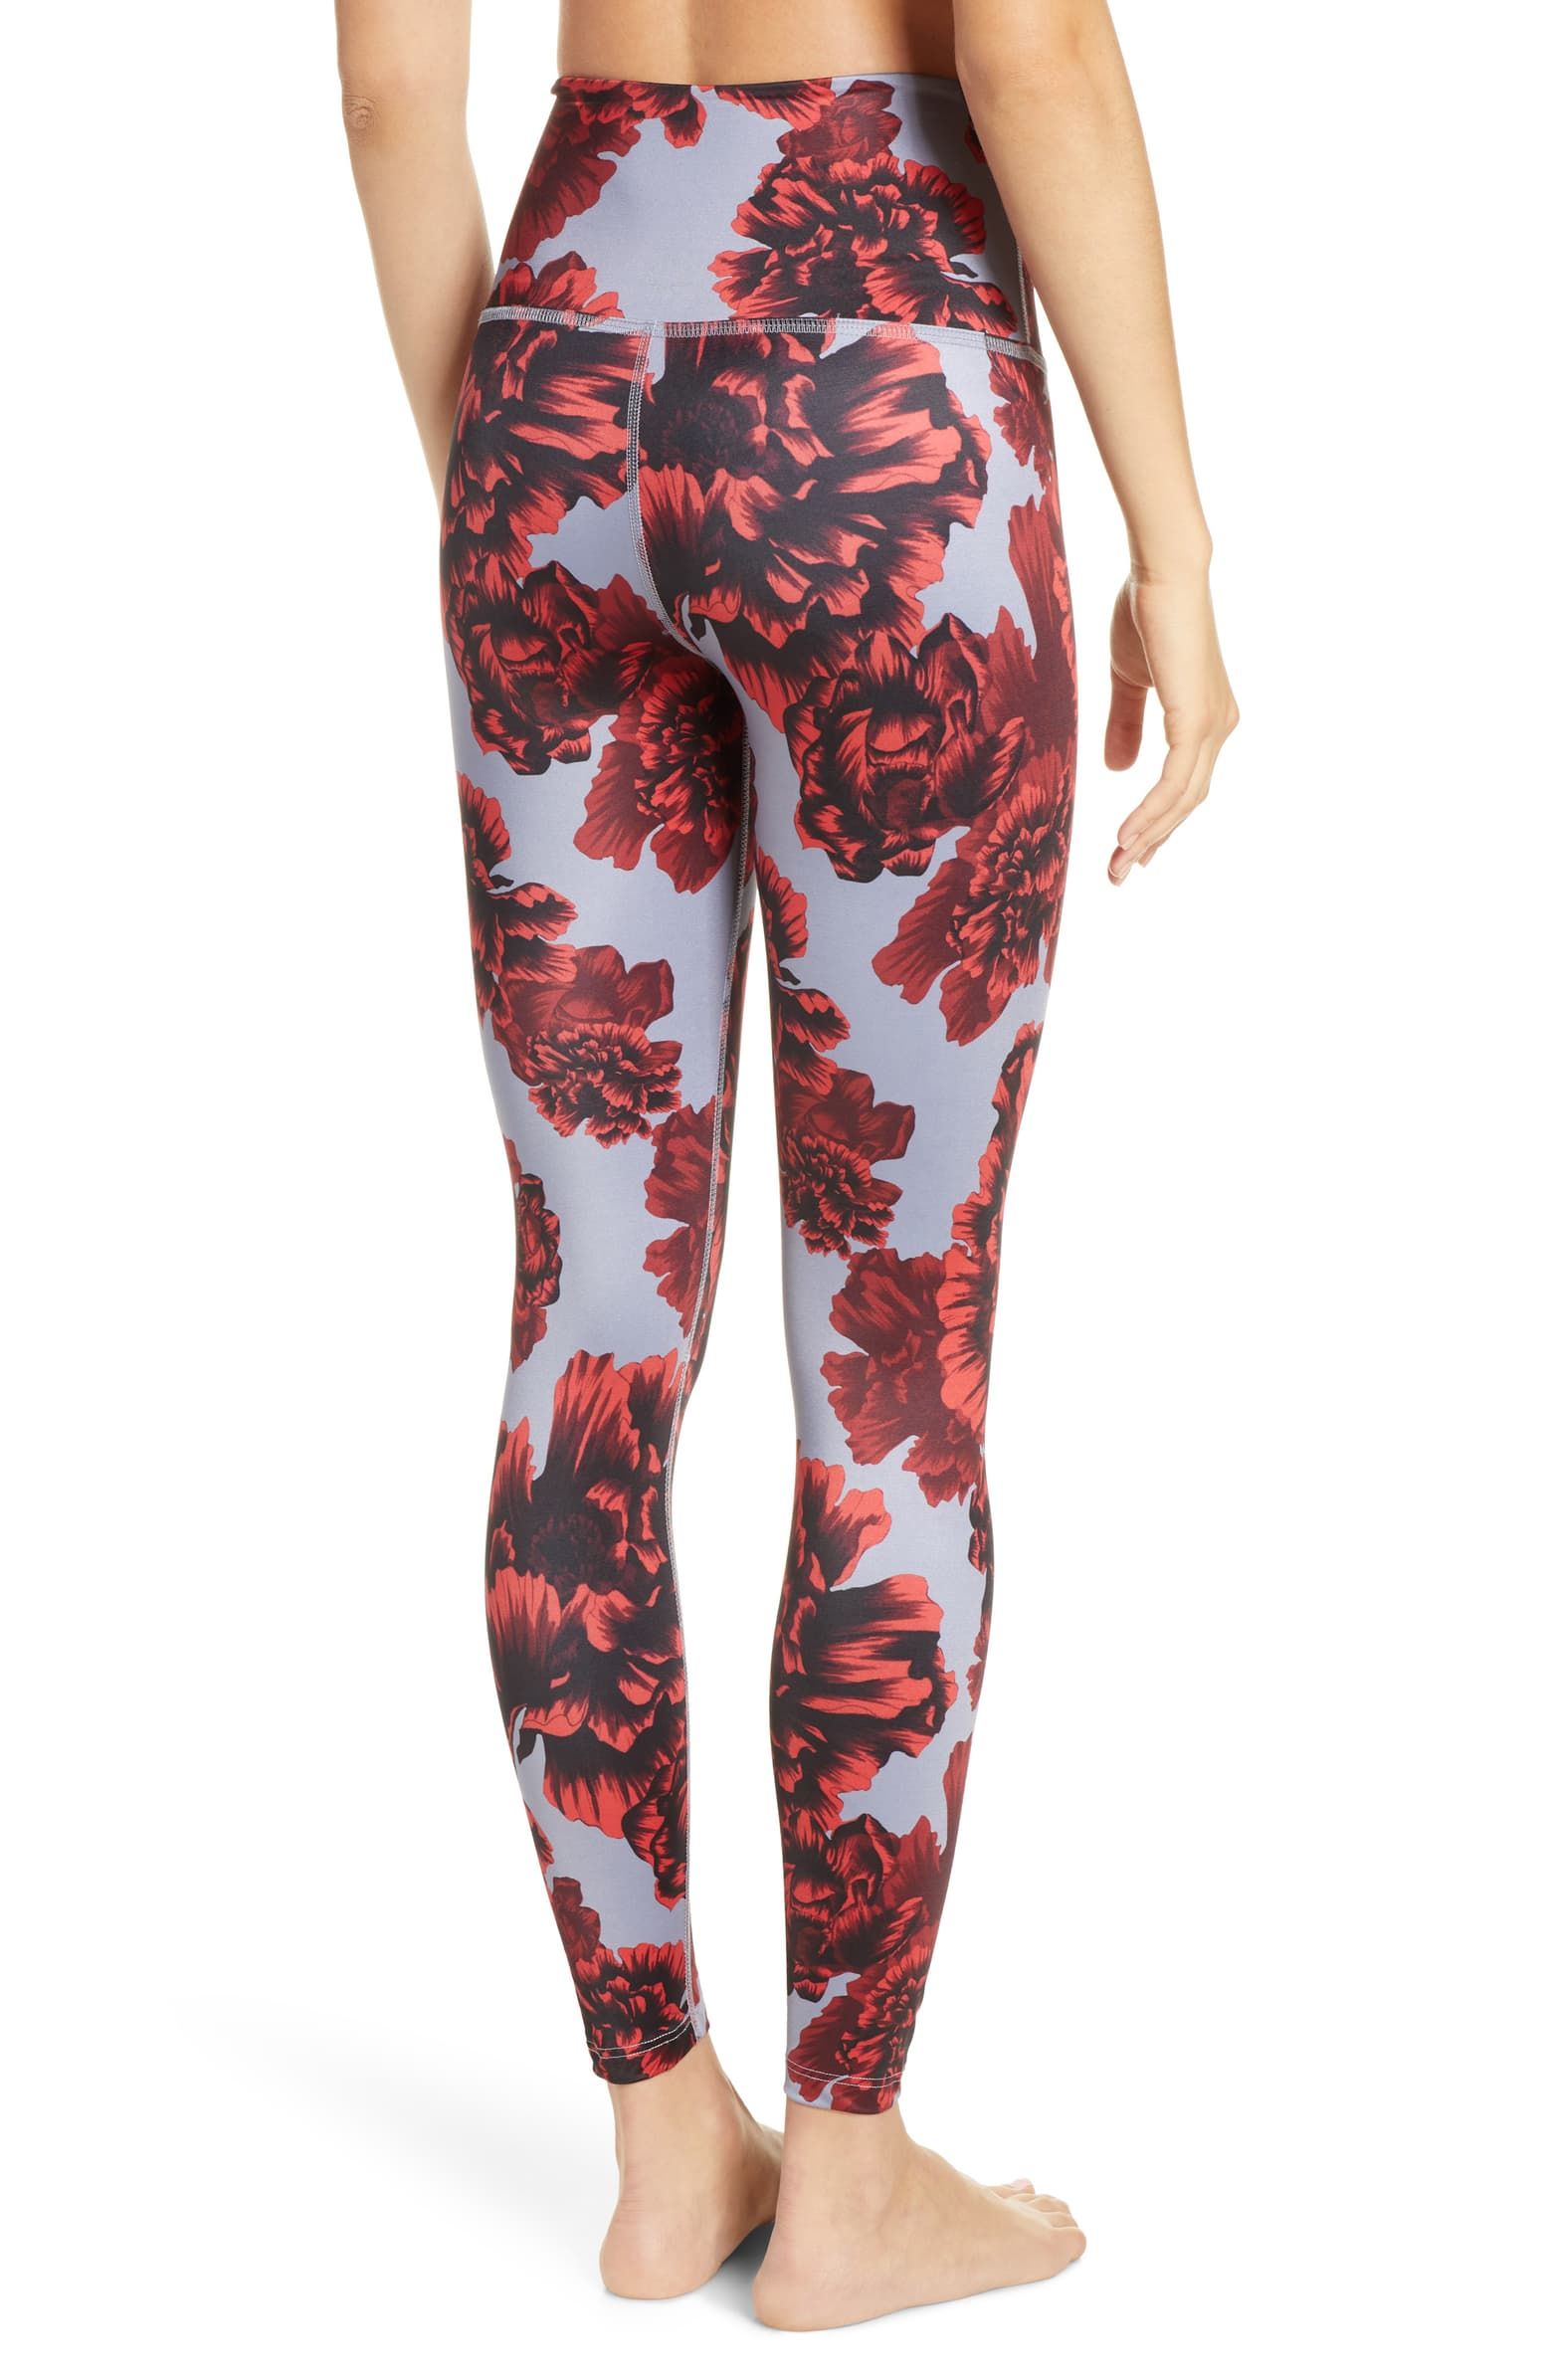 lux high waist leggings